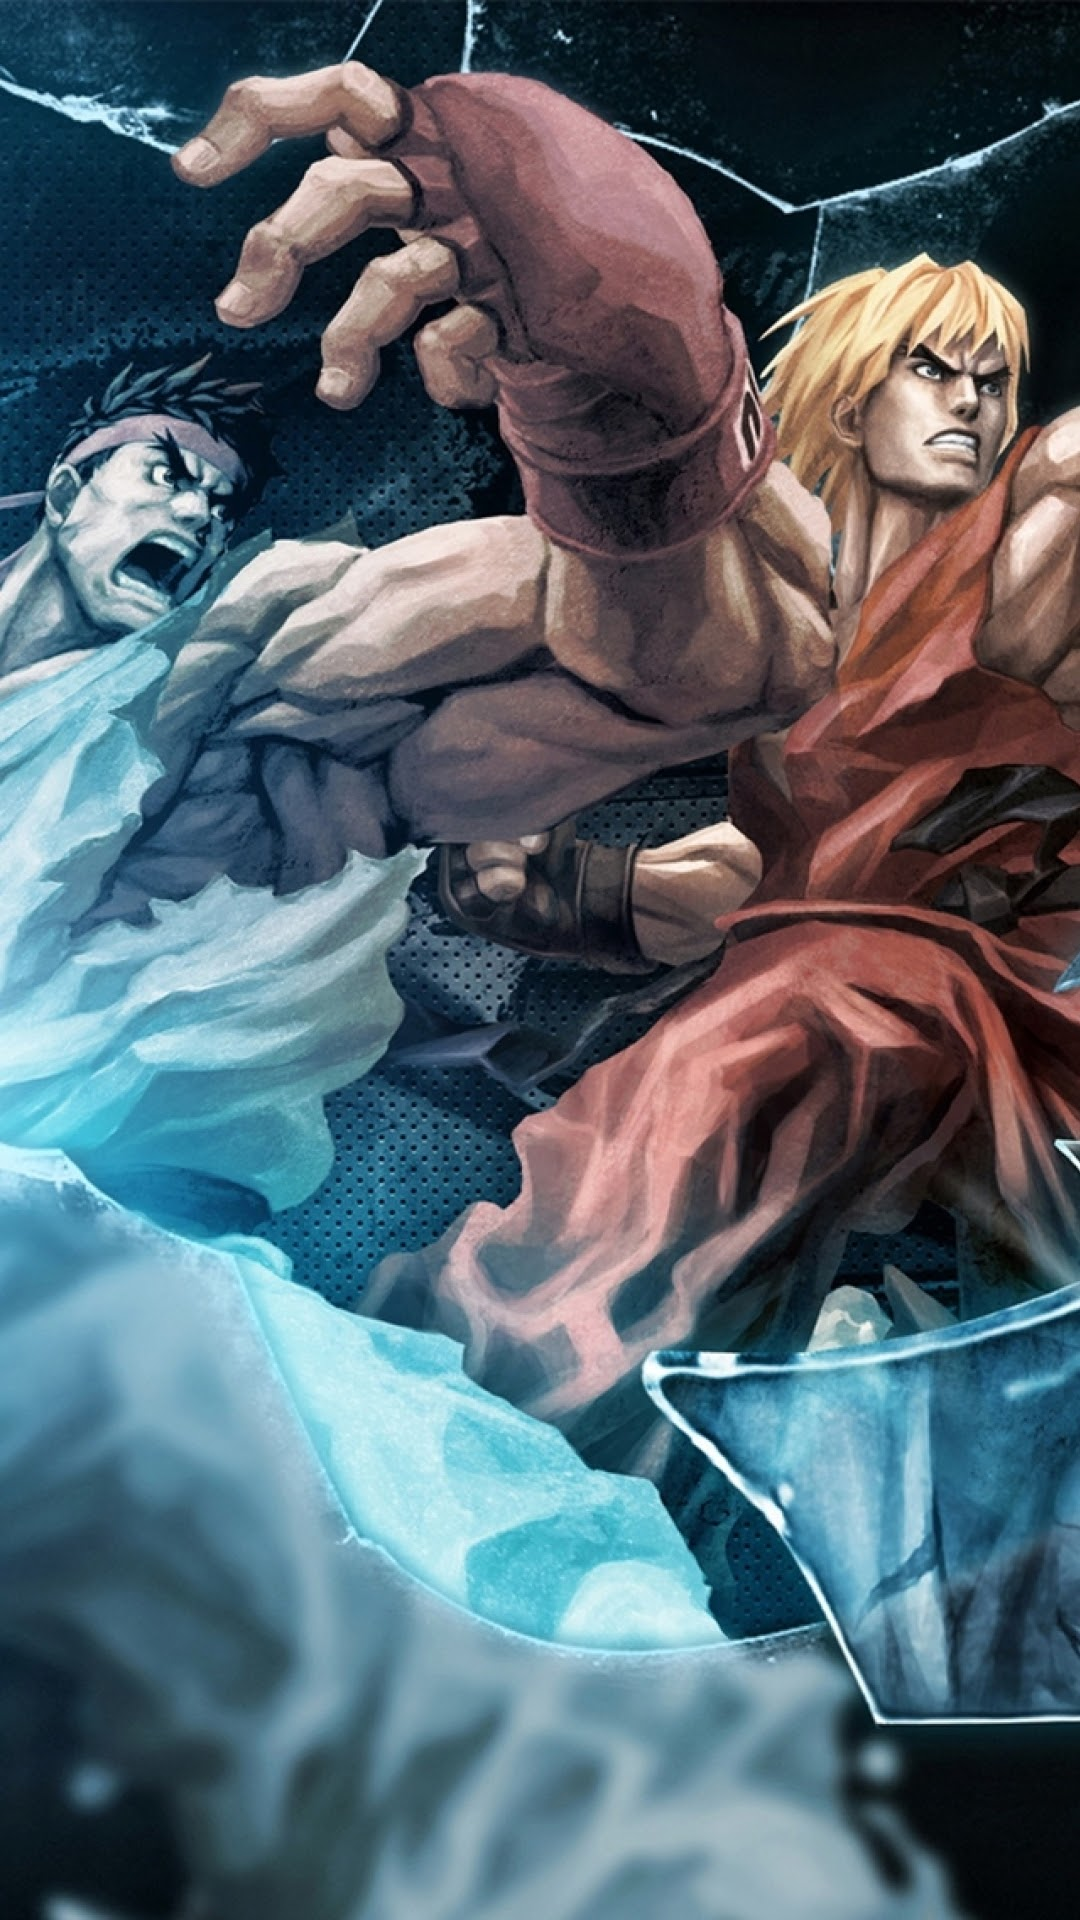 android best wallpapers: tekken x street fighter ryu and ken android